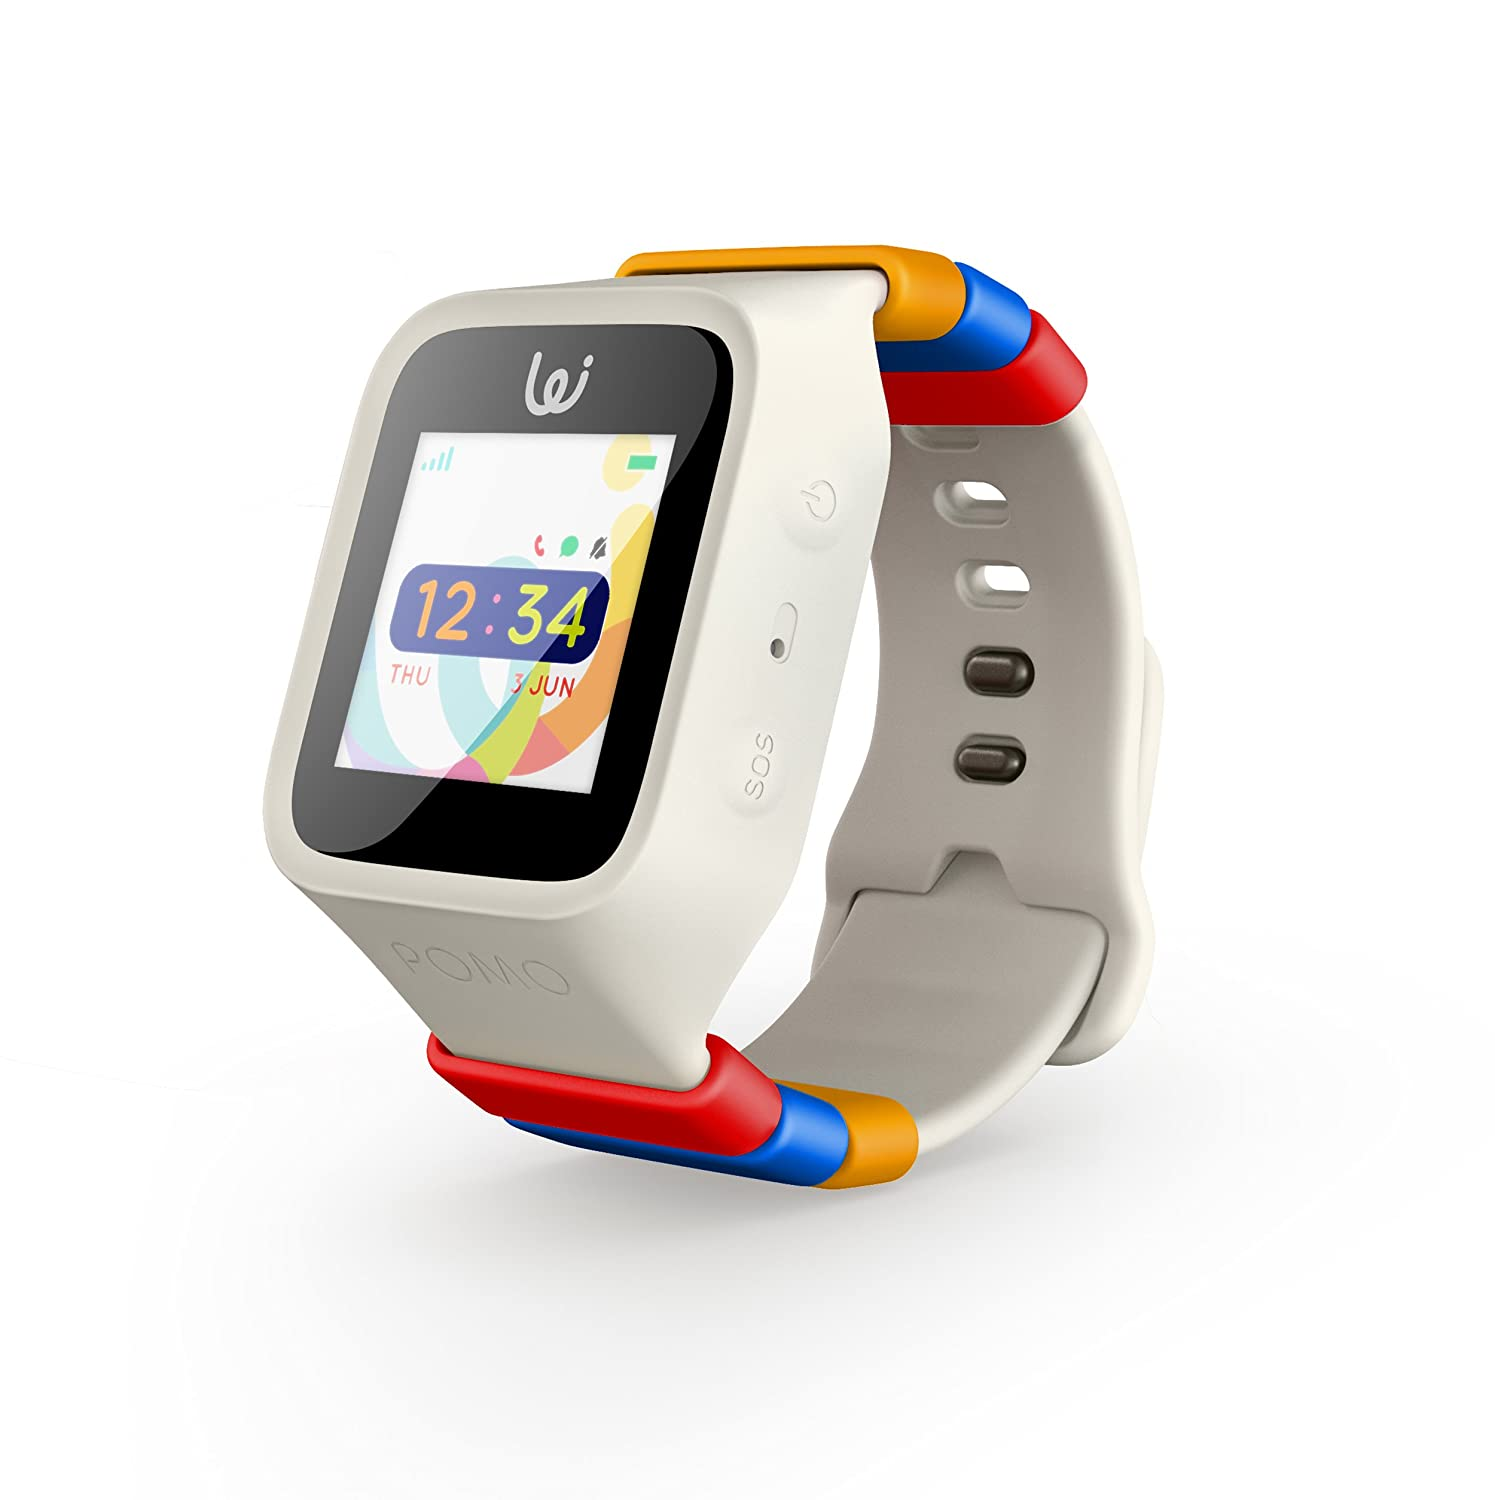 iGPS Wizard Smart Watch for Kids with a Three UK SIM Card - Live GPS  Tracking - Cellular Voice & Text - Water Resistant - SOS, Danger Zone &  Device